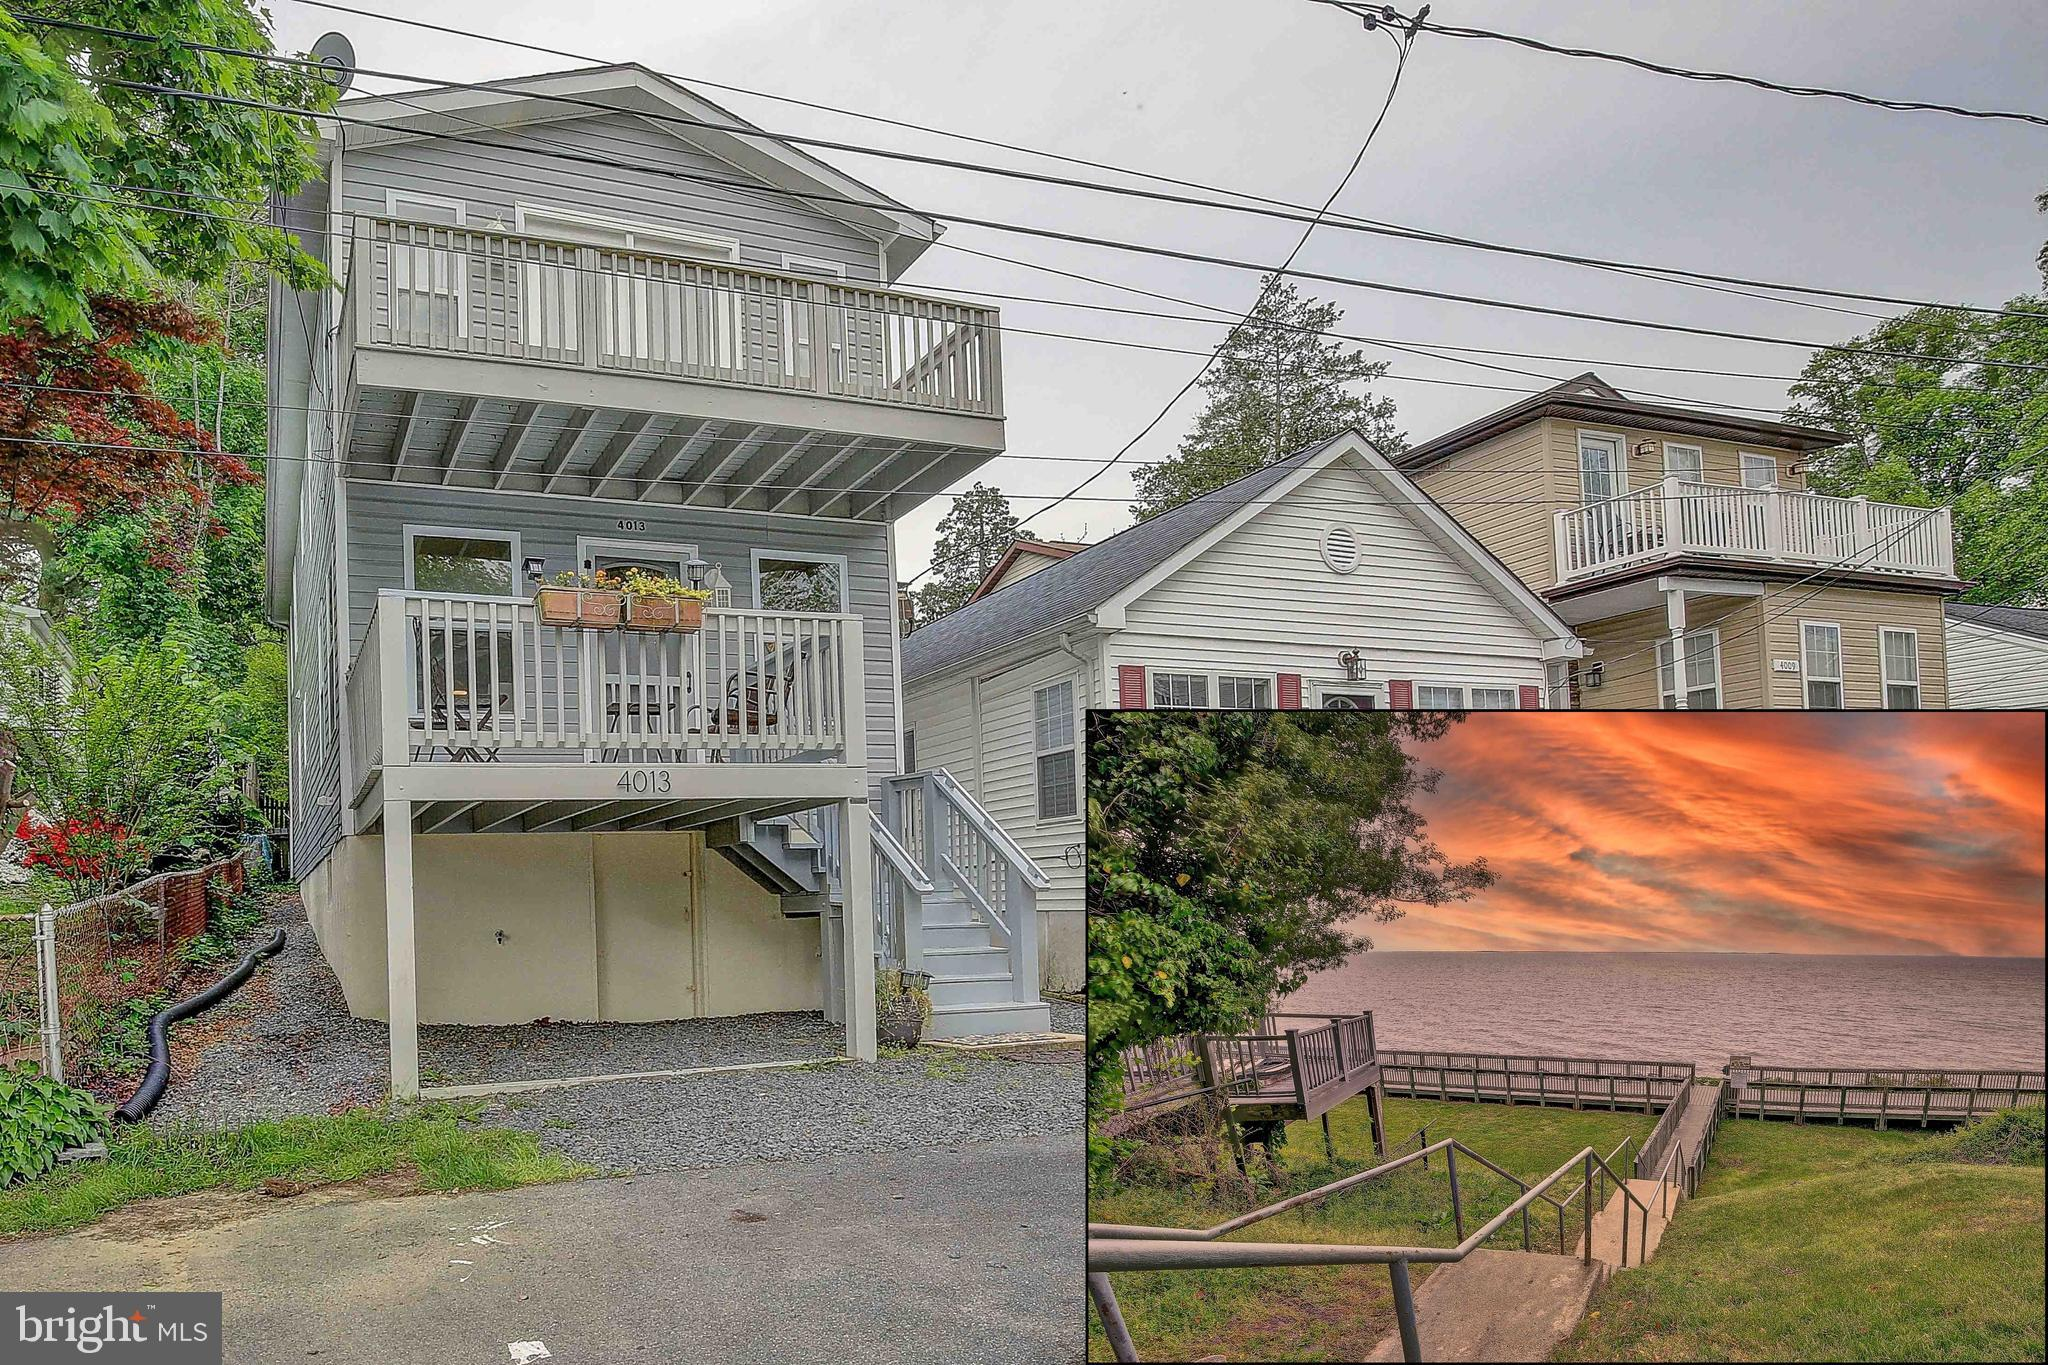 Beautiful home tucked away on a private block in the town of Chesapeake Beach. Just one block from t